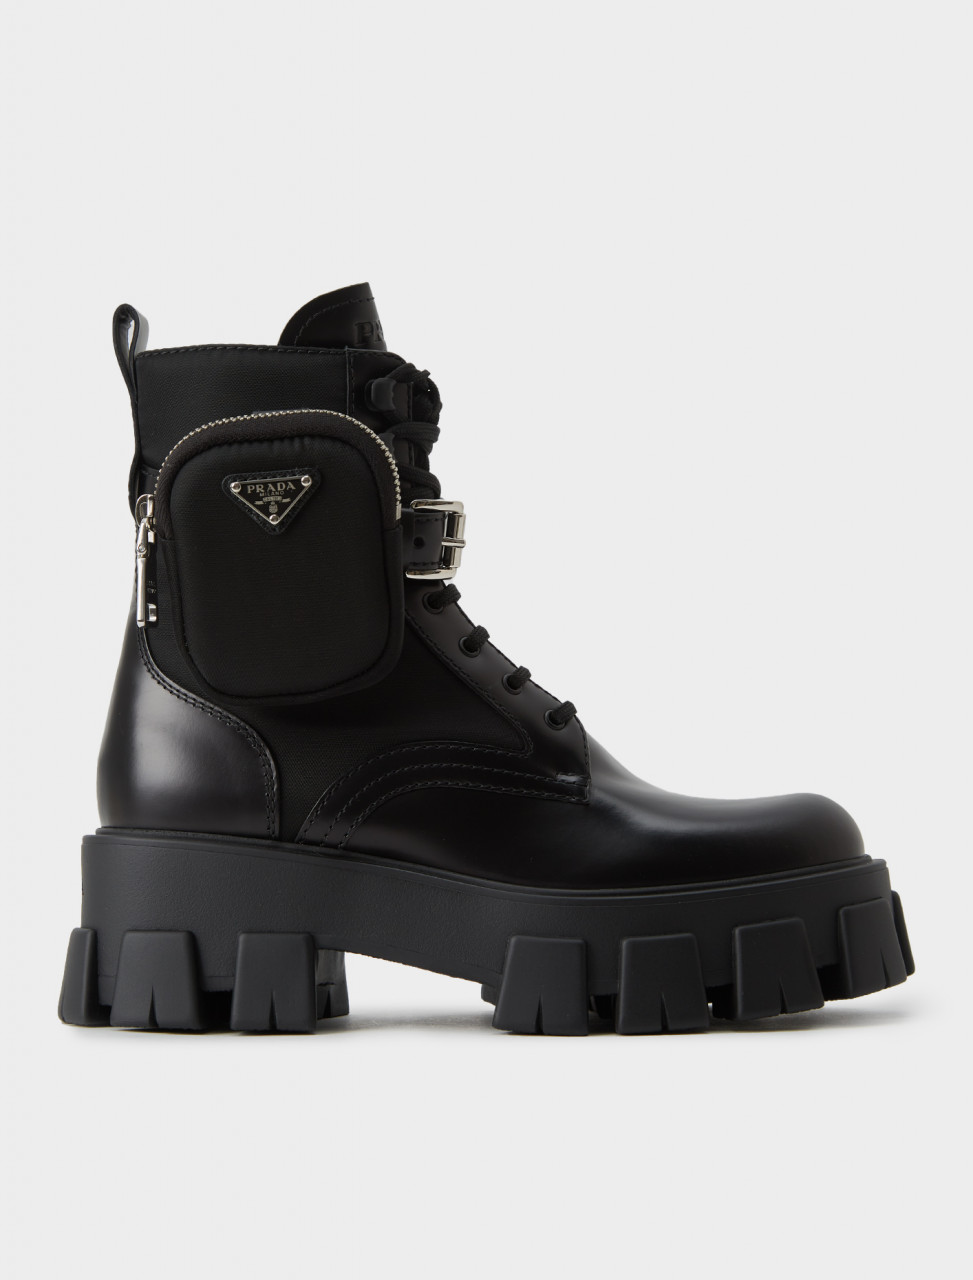 Prada Leather Combat Boots with Removable Nylon Pouch in Black